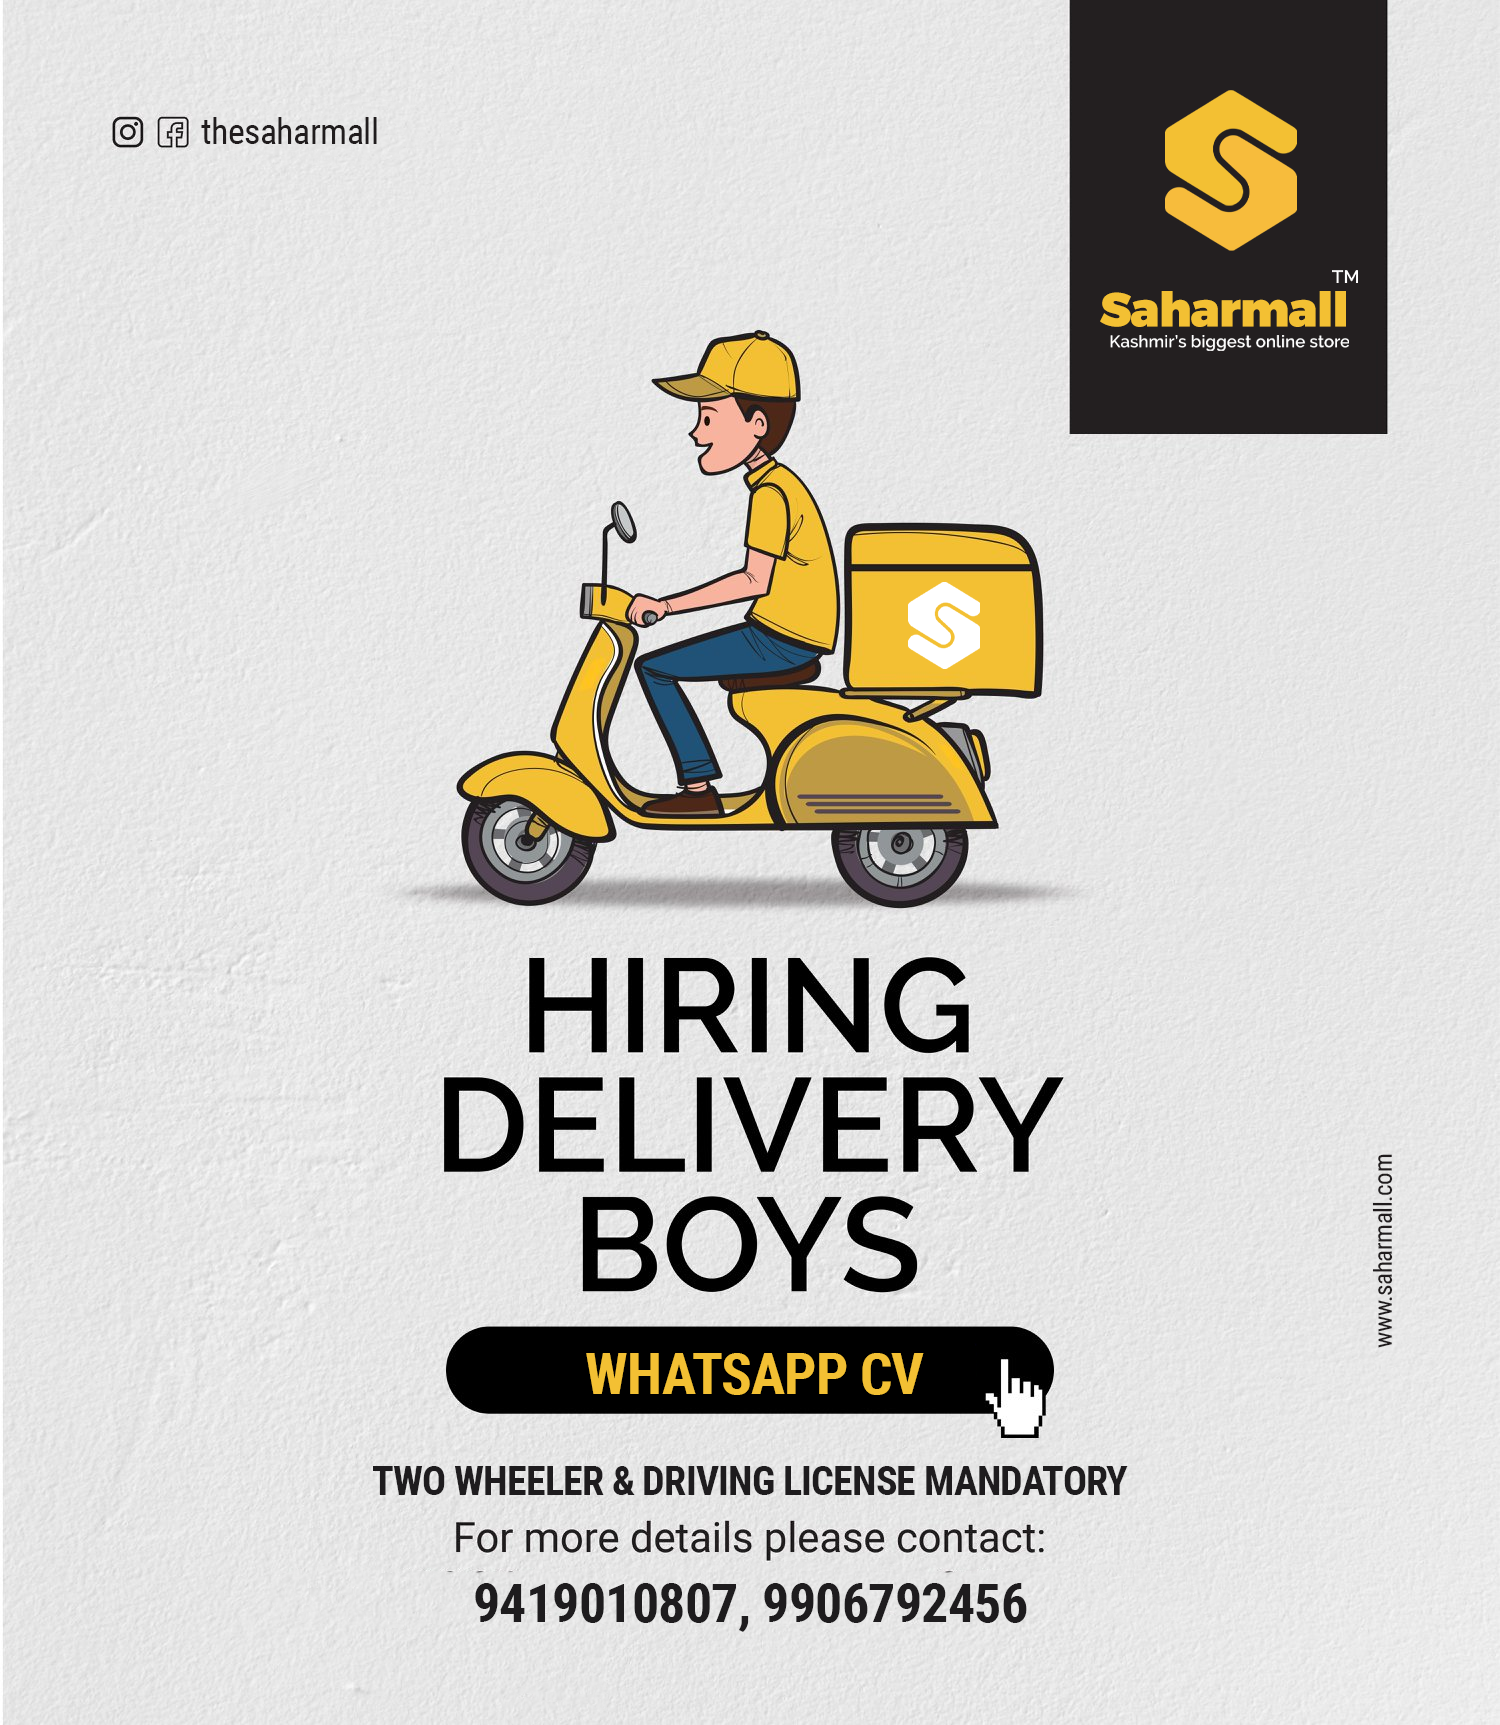 Job Update - Delivery Boys Required In Srinagar